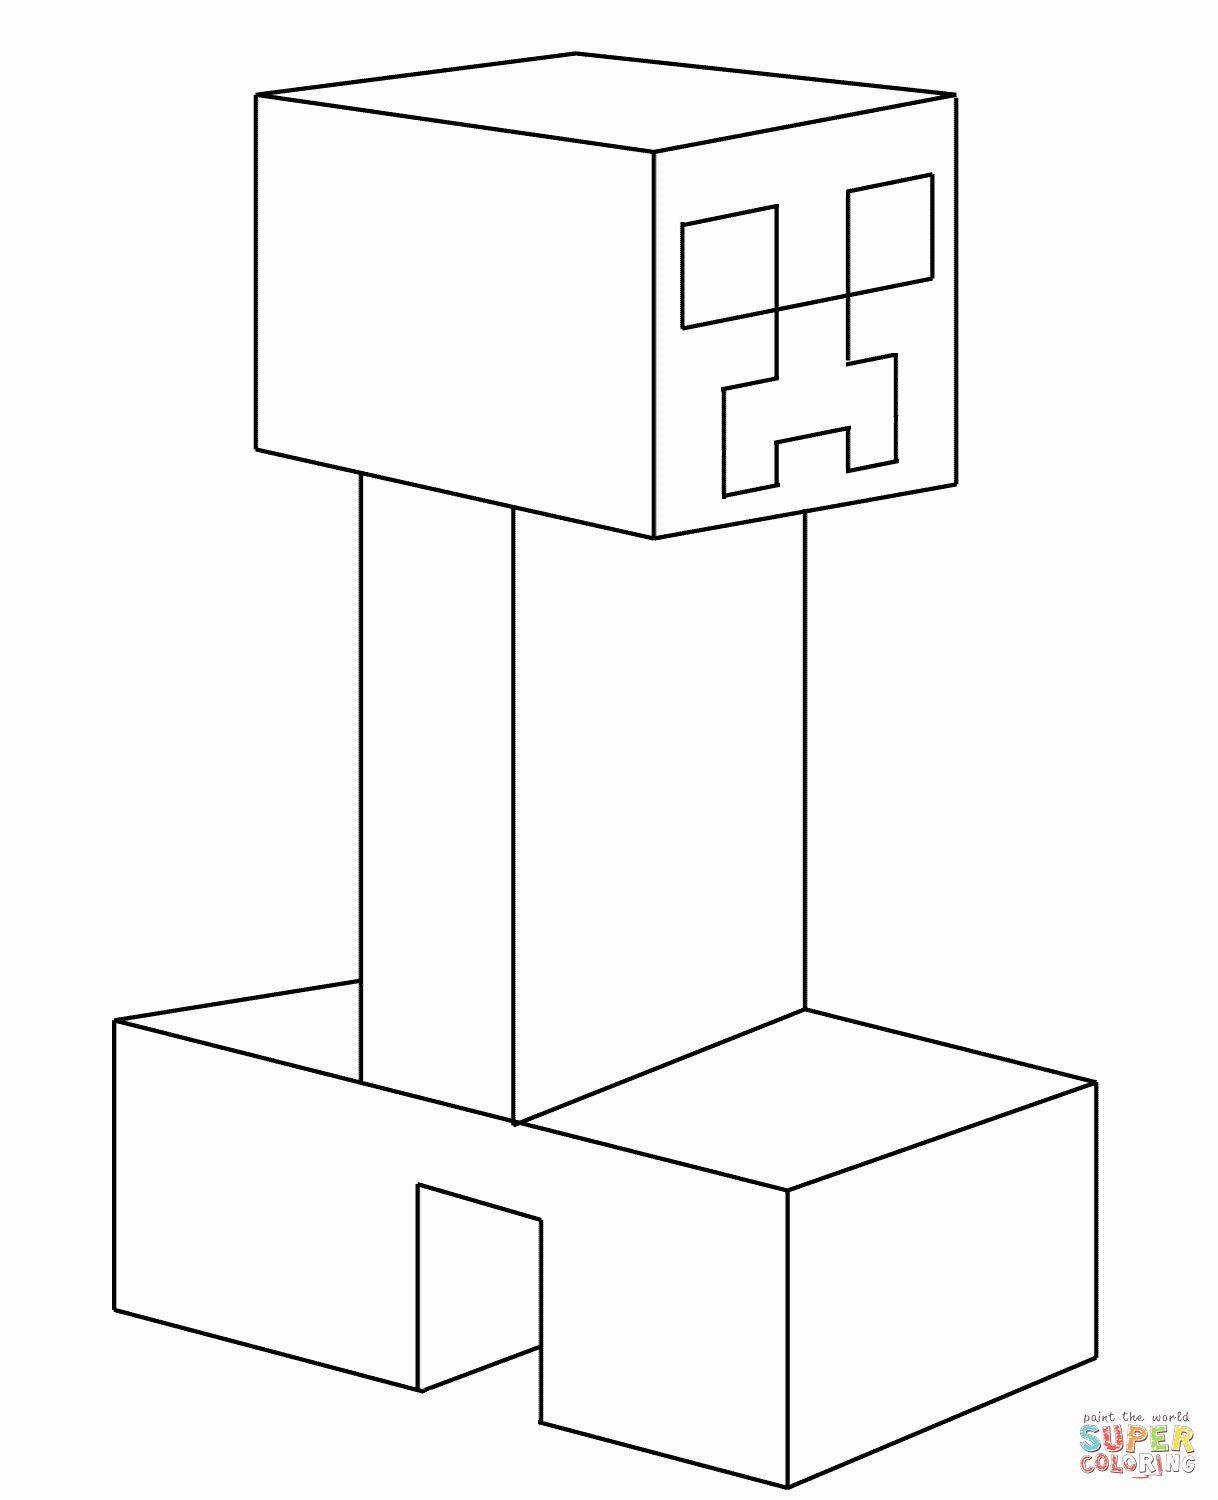 creeper coloring pages minecraft creeper coloring page downloadable educative creeper pages coloring